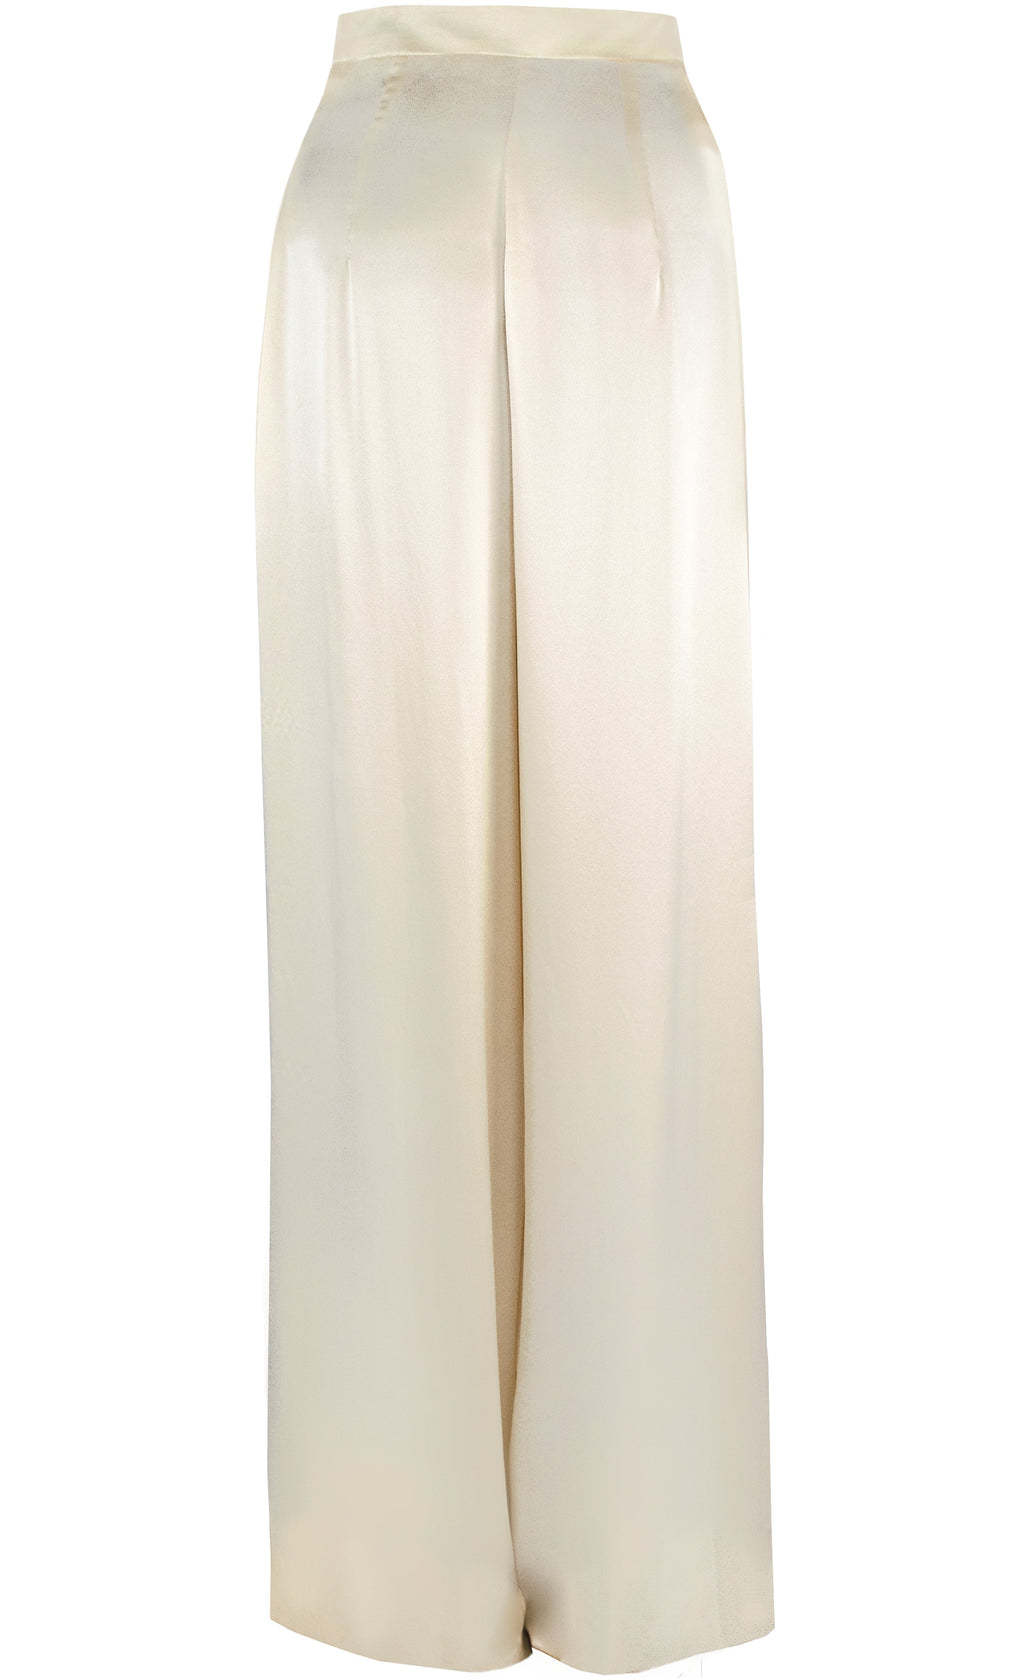 Cecily Two-piece Cream Jumpsuit with Tassels - KxLNewYork